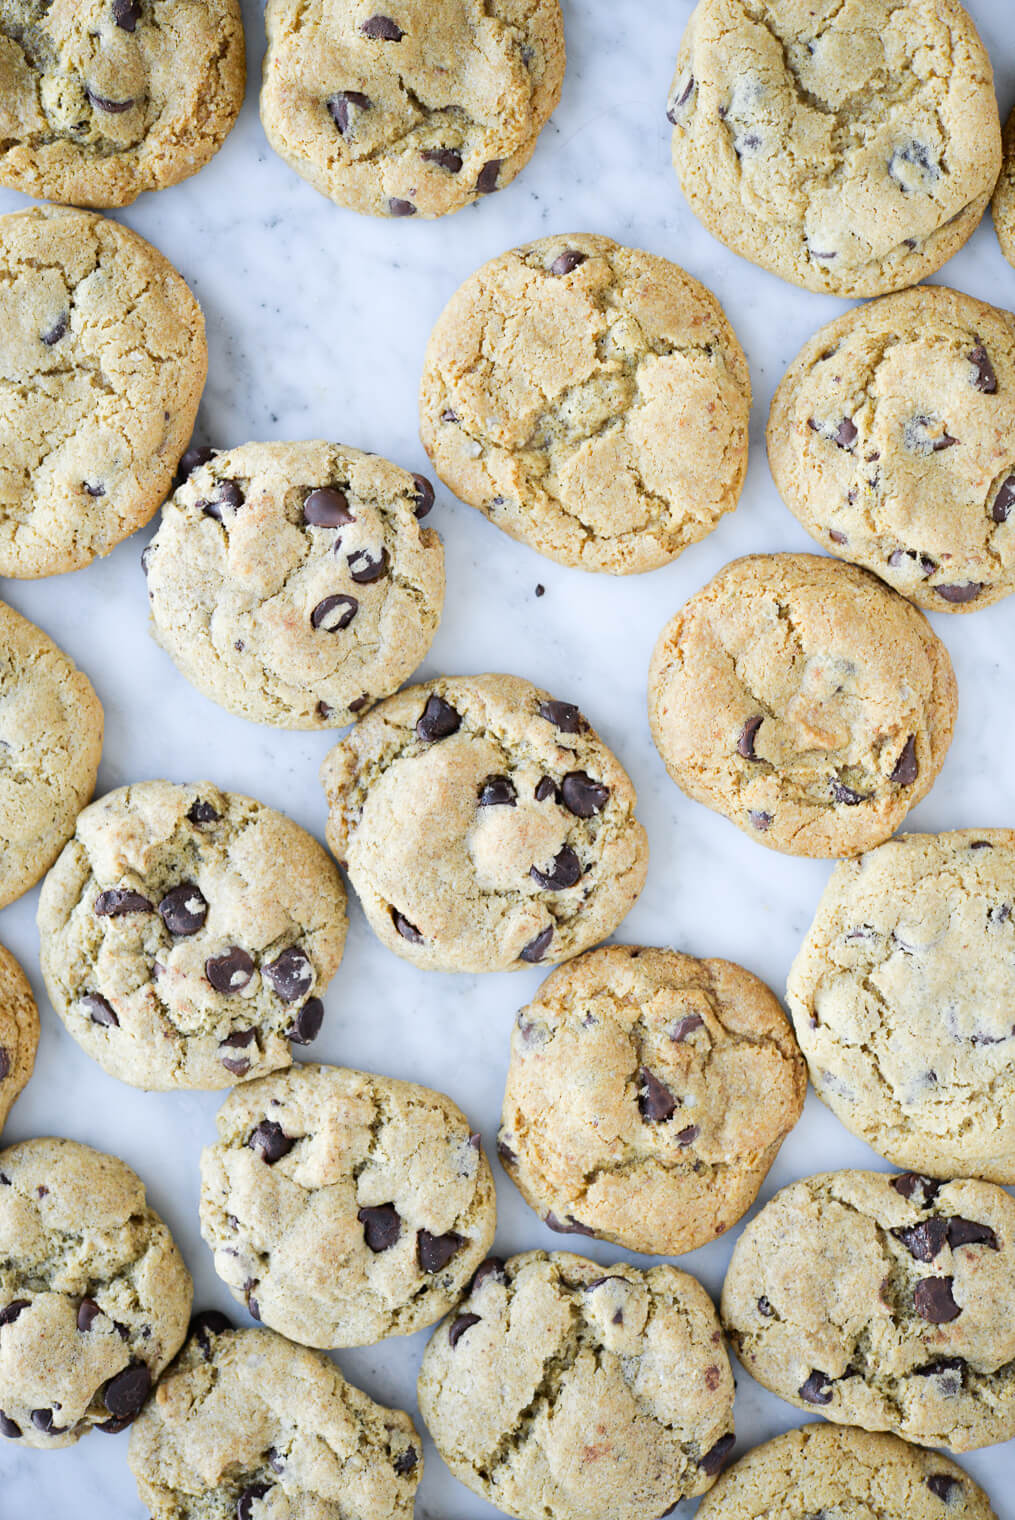 top view of chocolate chip cookies made with different egg replacers